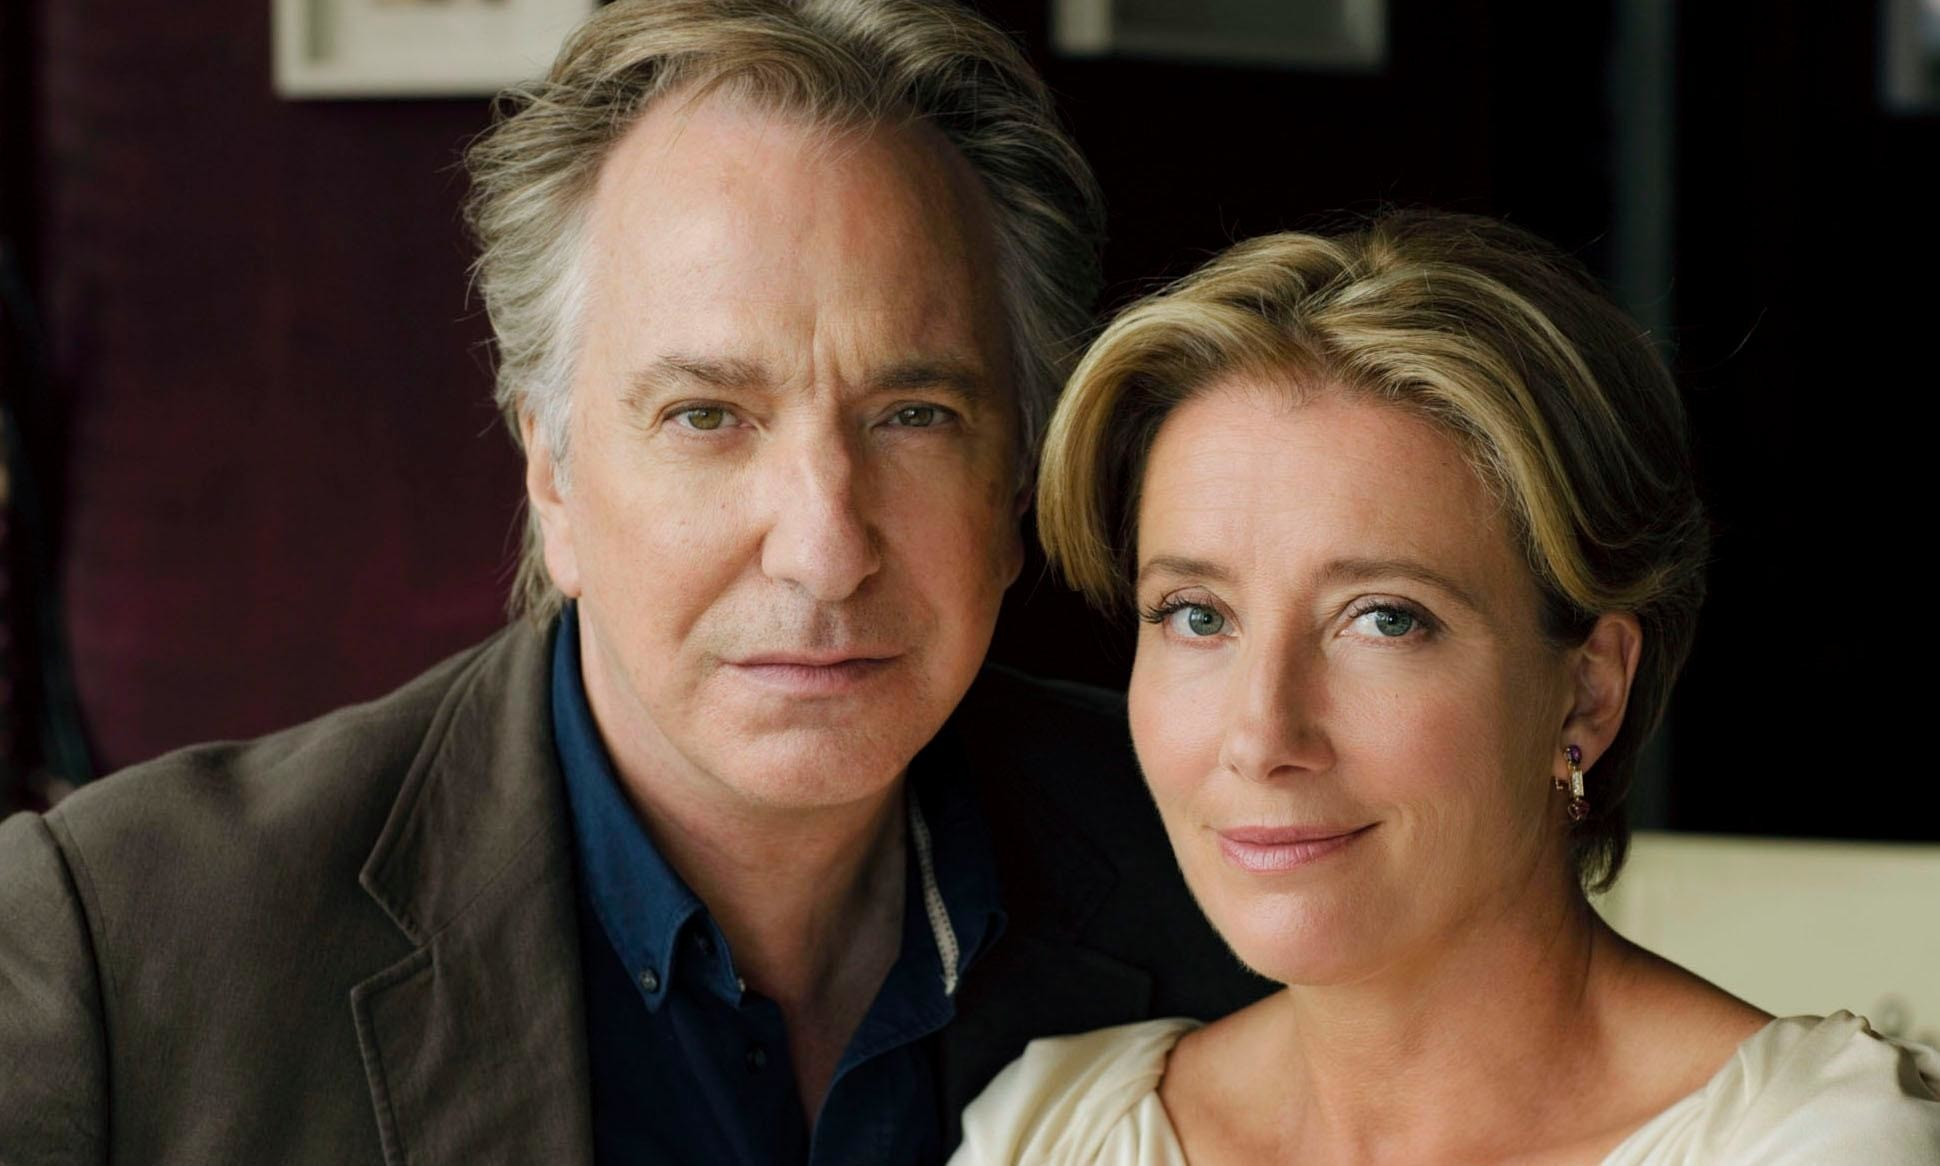 'We are all so devastated': tributes pour in to Alan Rickman from acting world